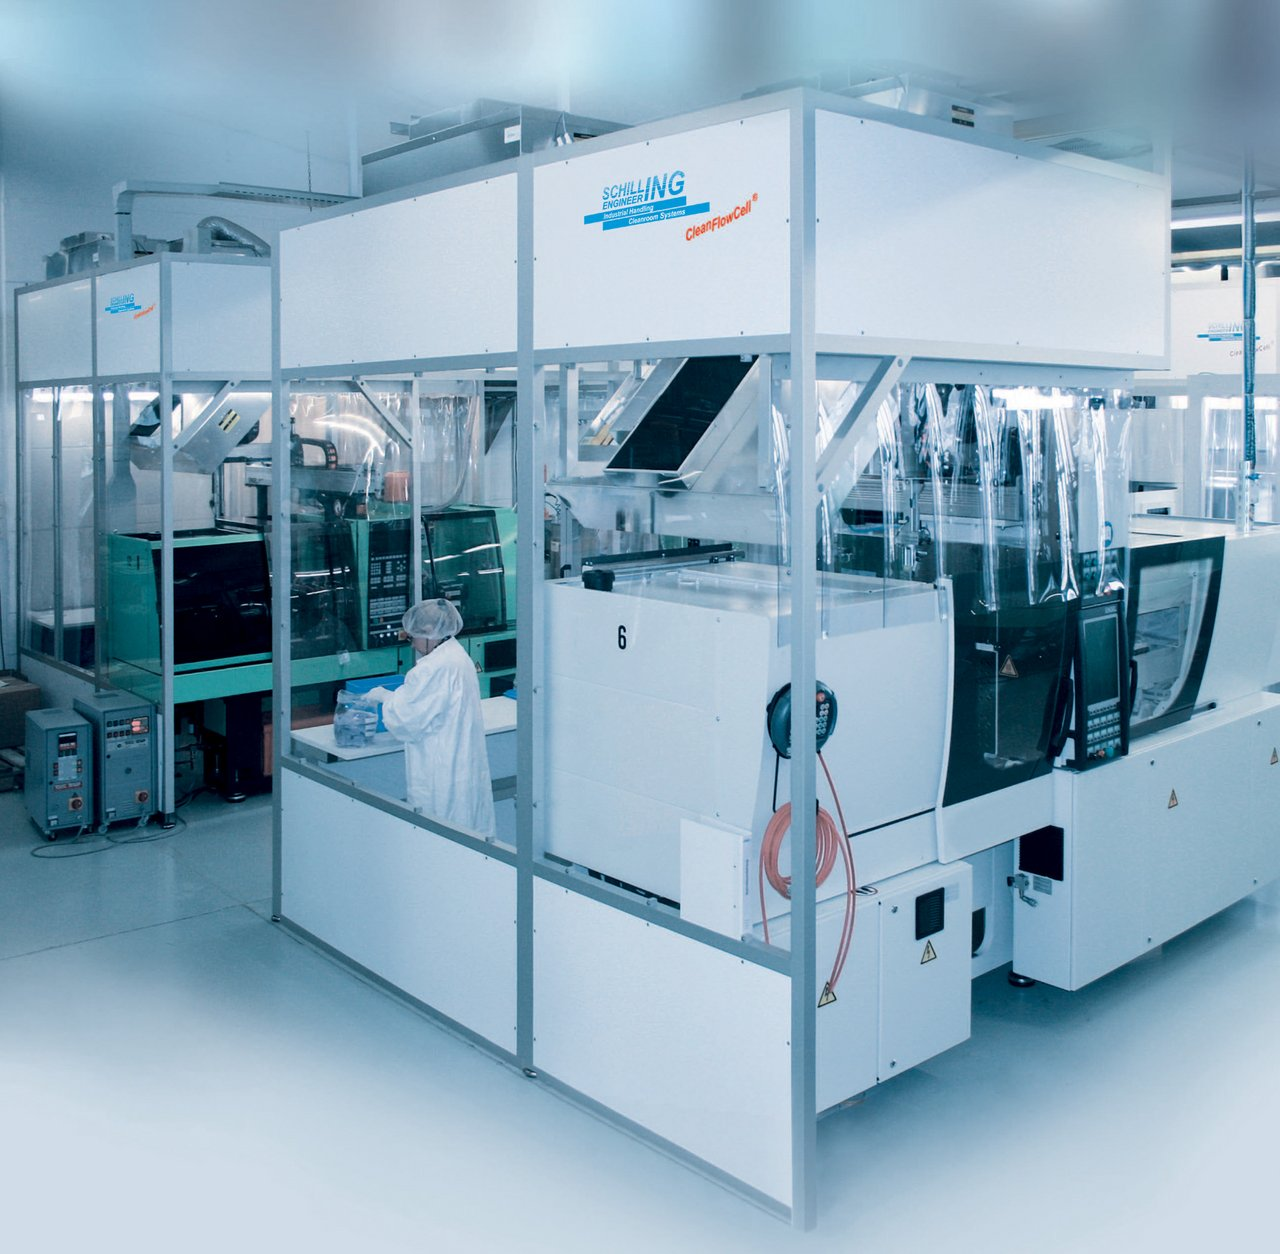 Cleanroom cabin for the production of medical plastic injection moulded parts, cleanroom class ISO 7